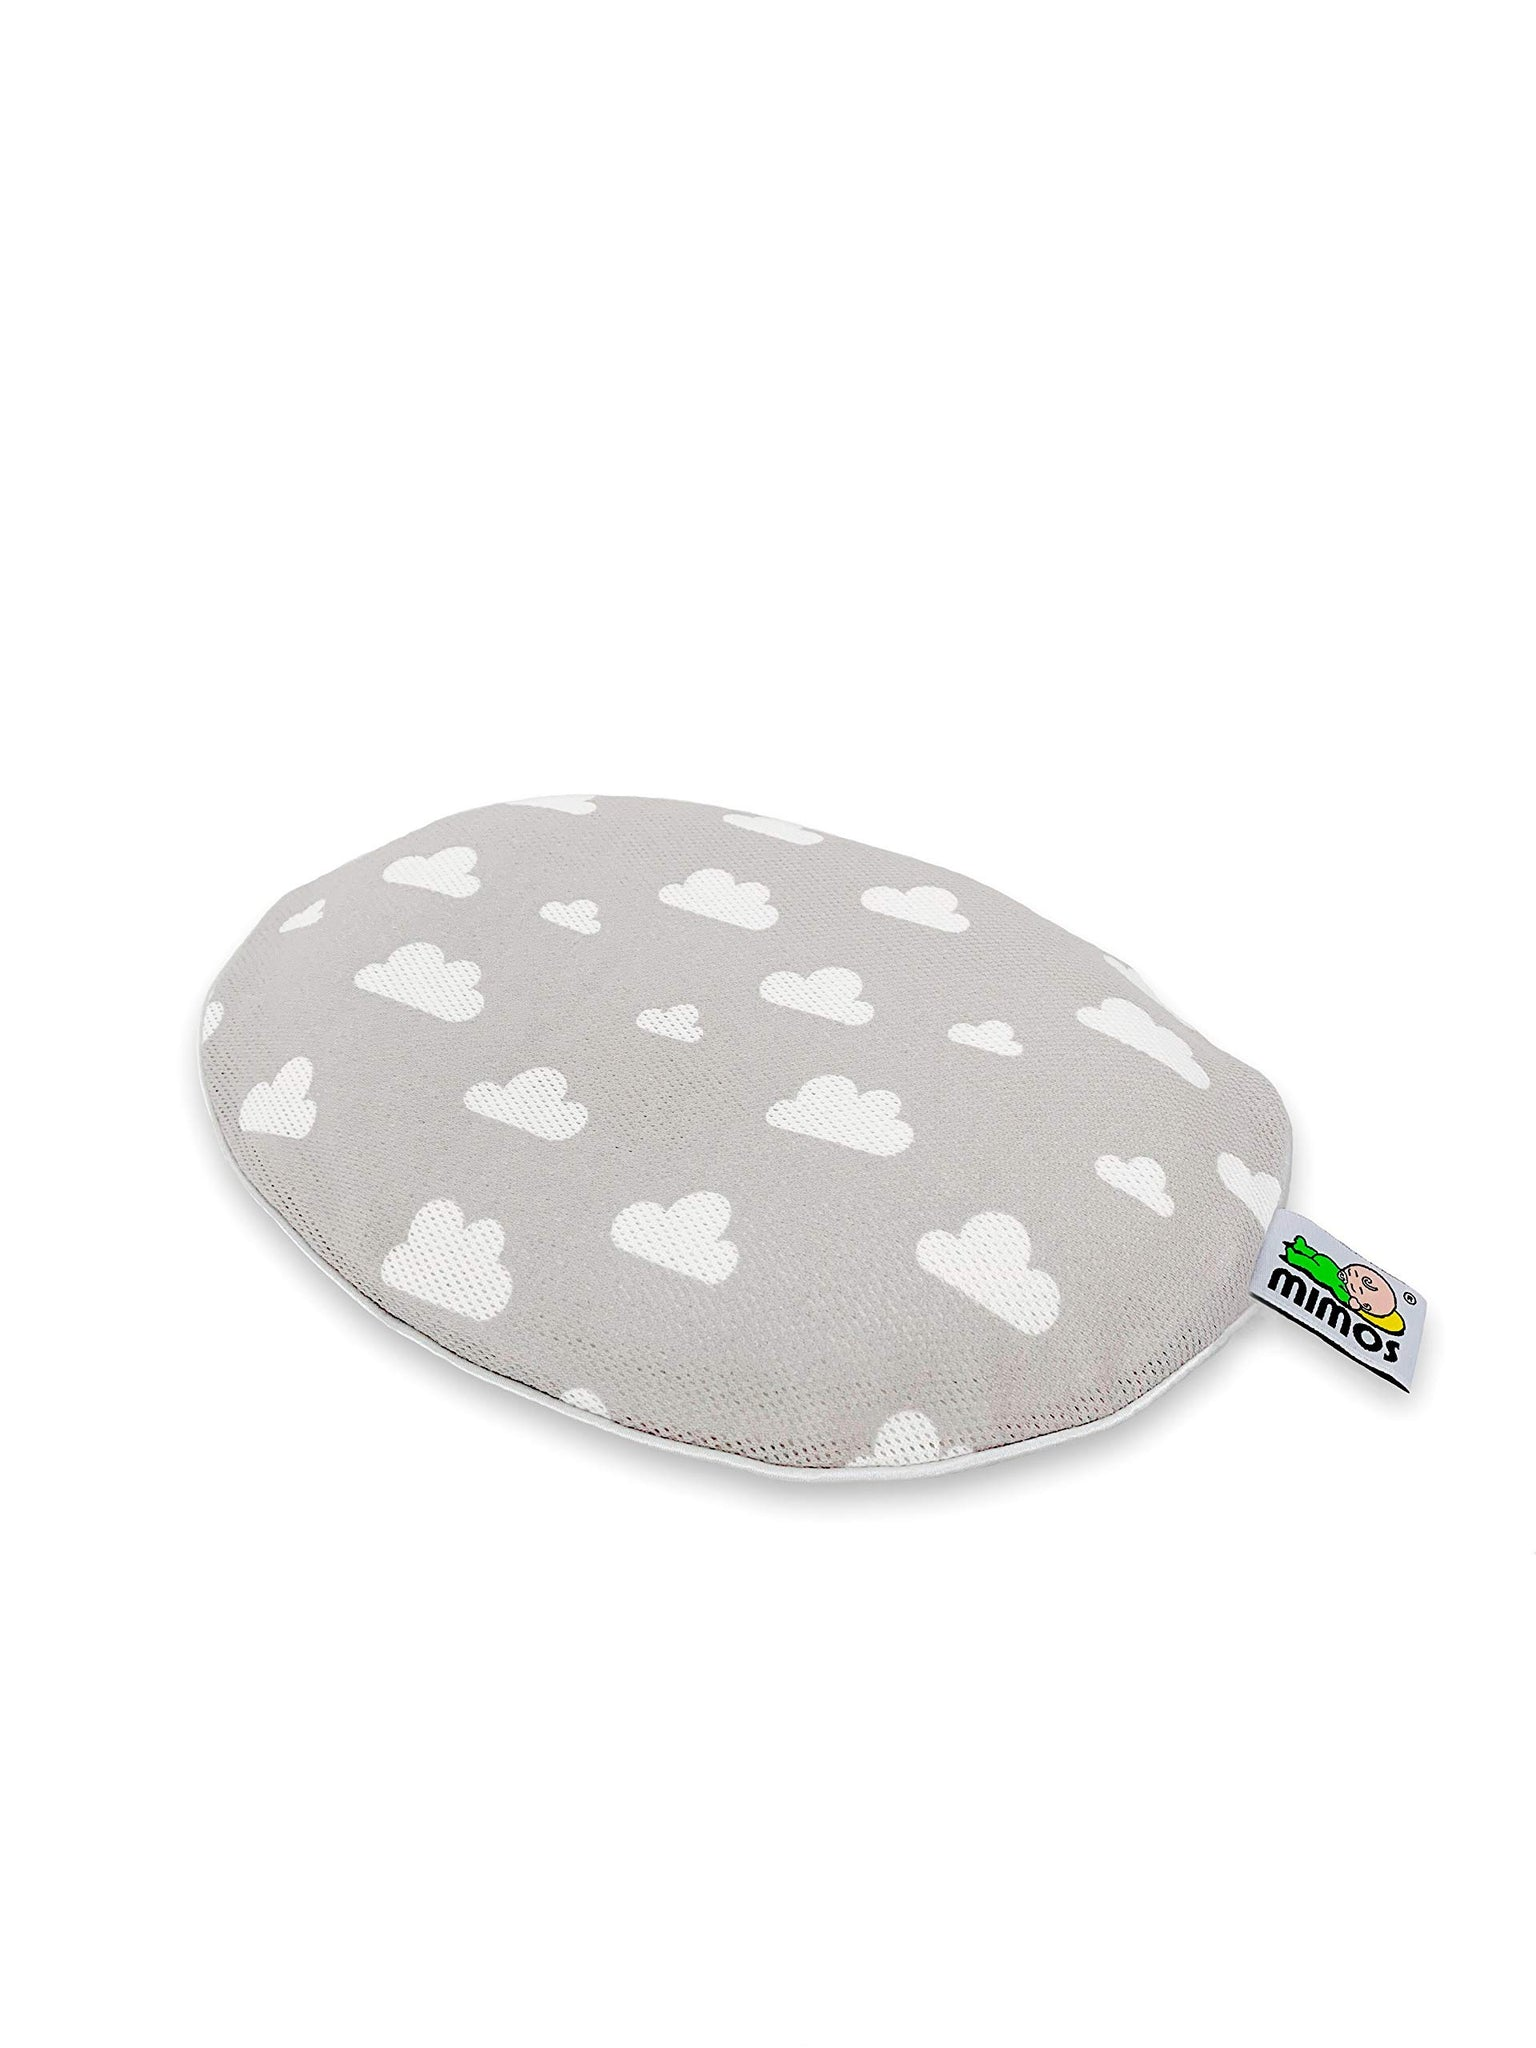 Grey Cloud Mimos Pillow Cover – Mimos